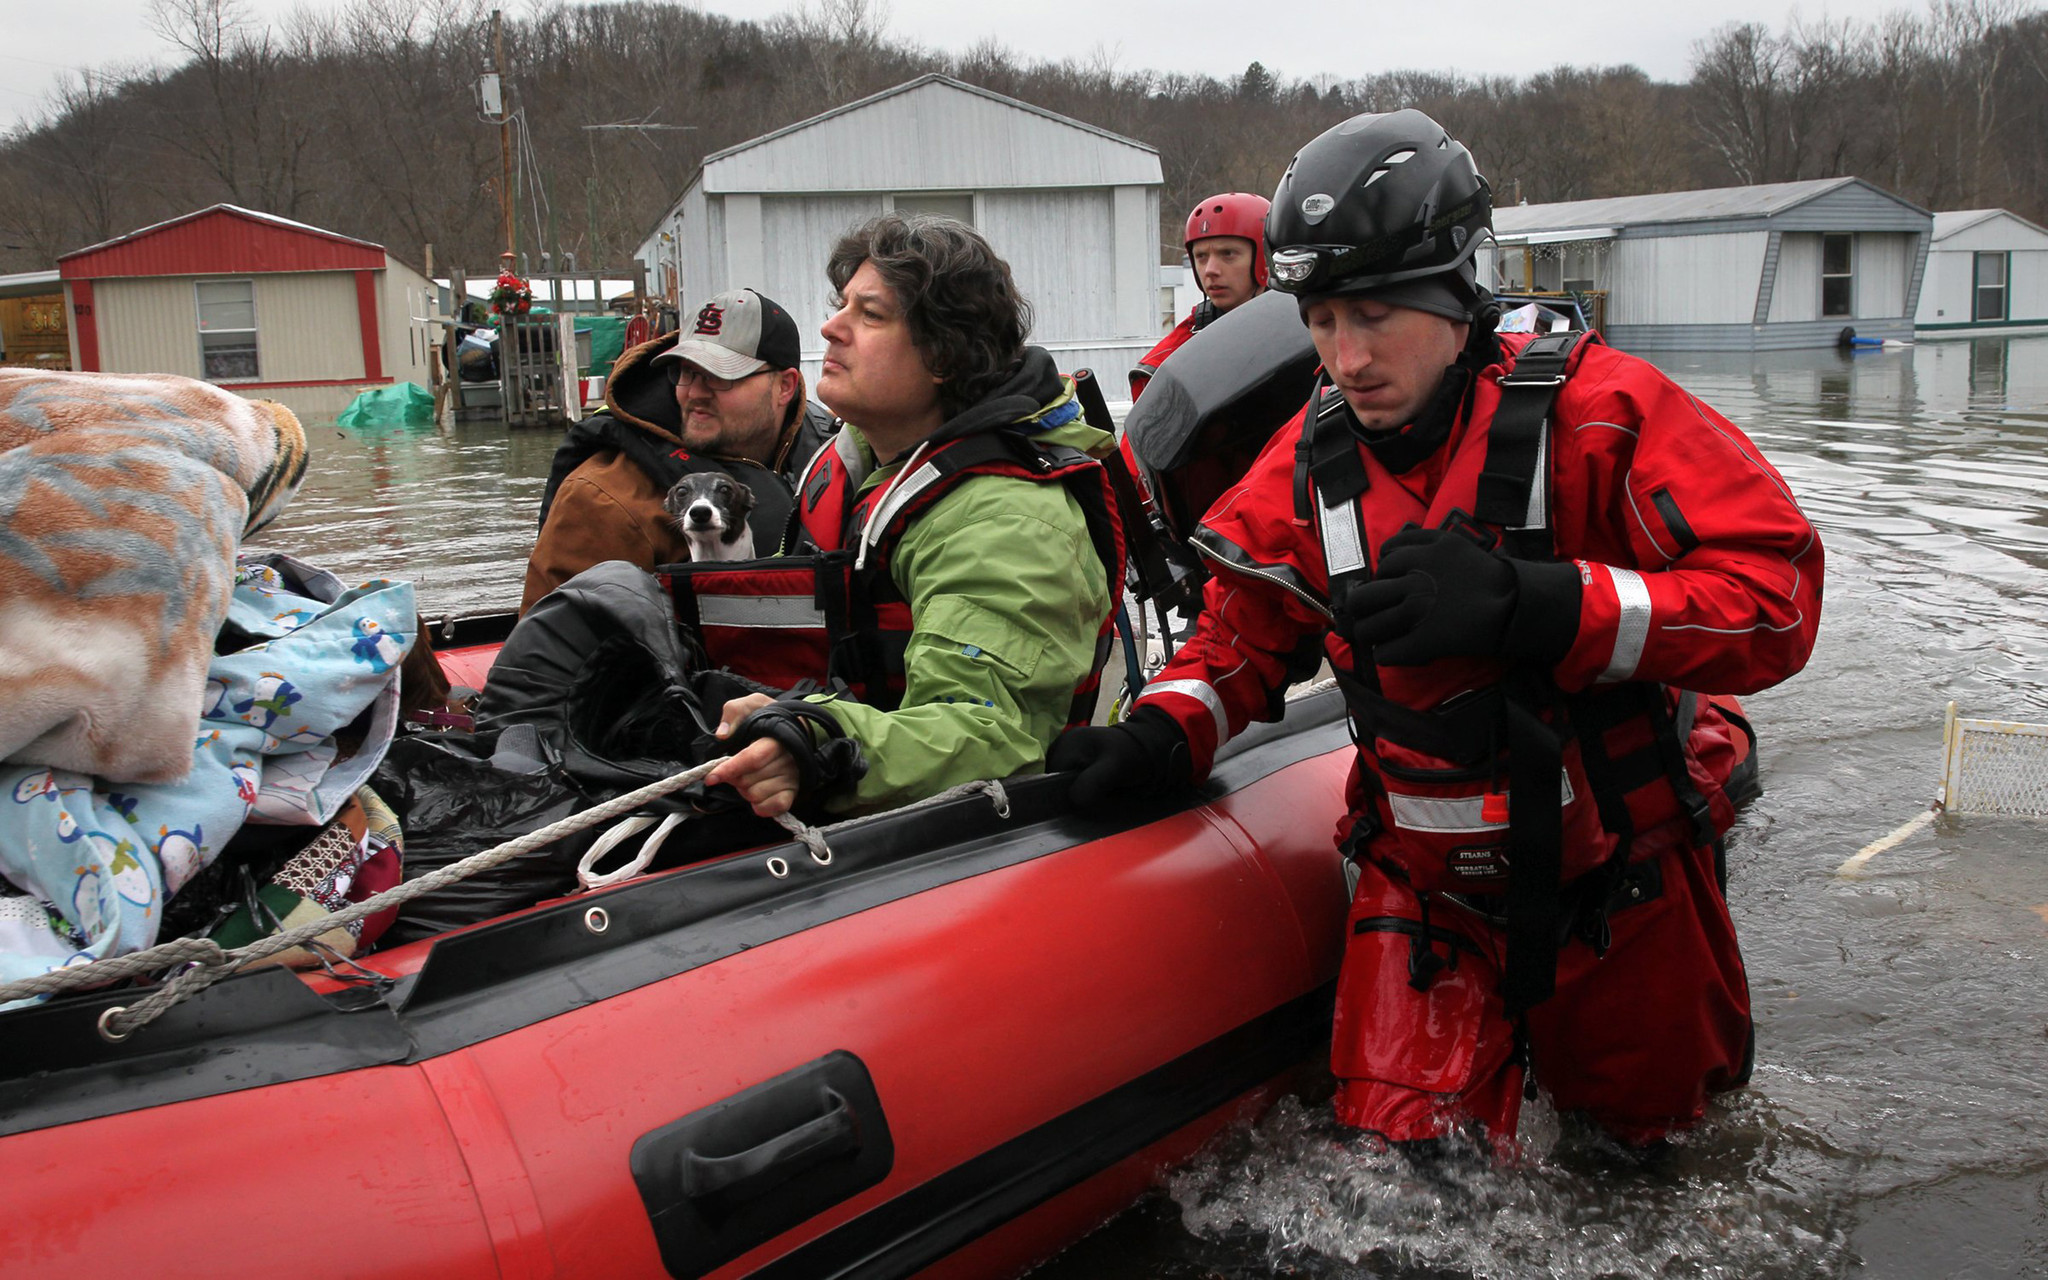 Midwest floods: Rauner activates National Guard; body of missing Illinois teen found